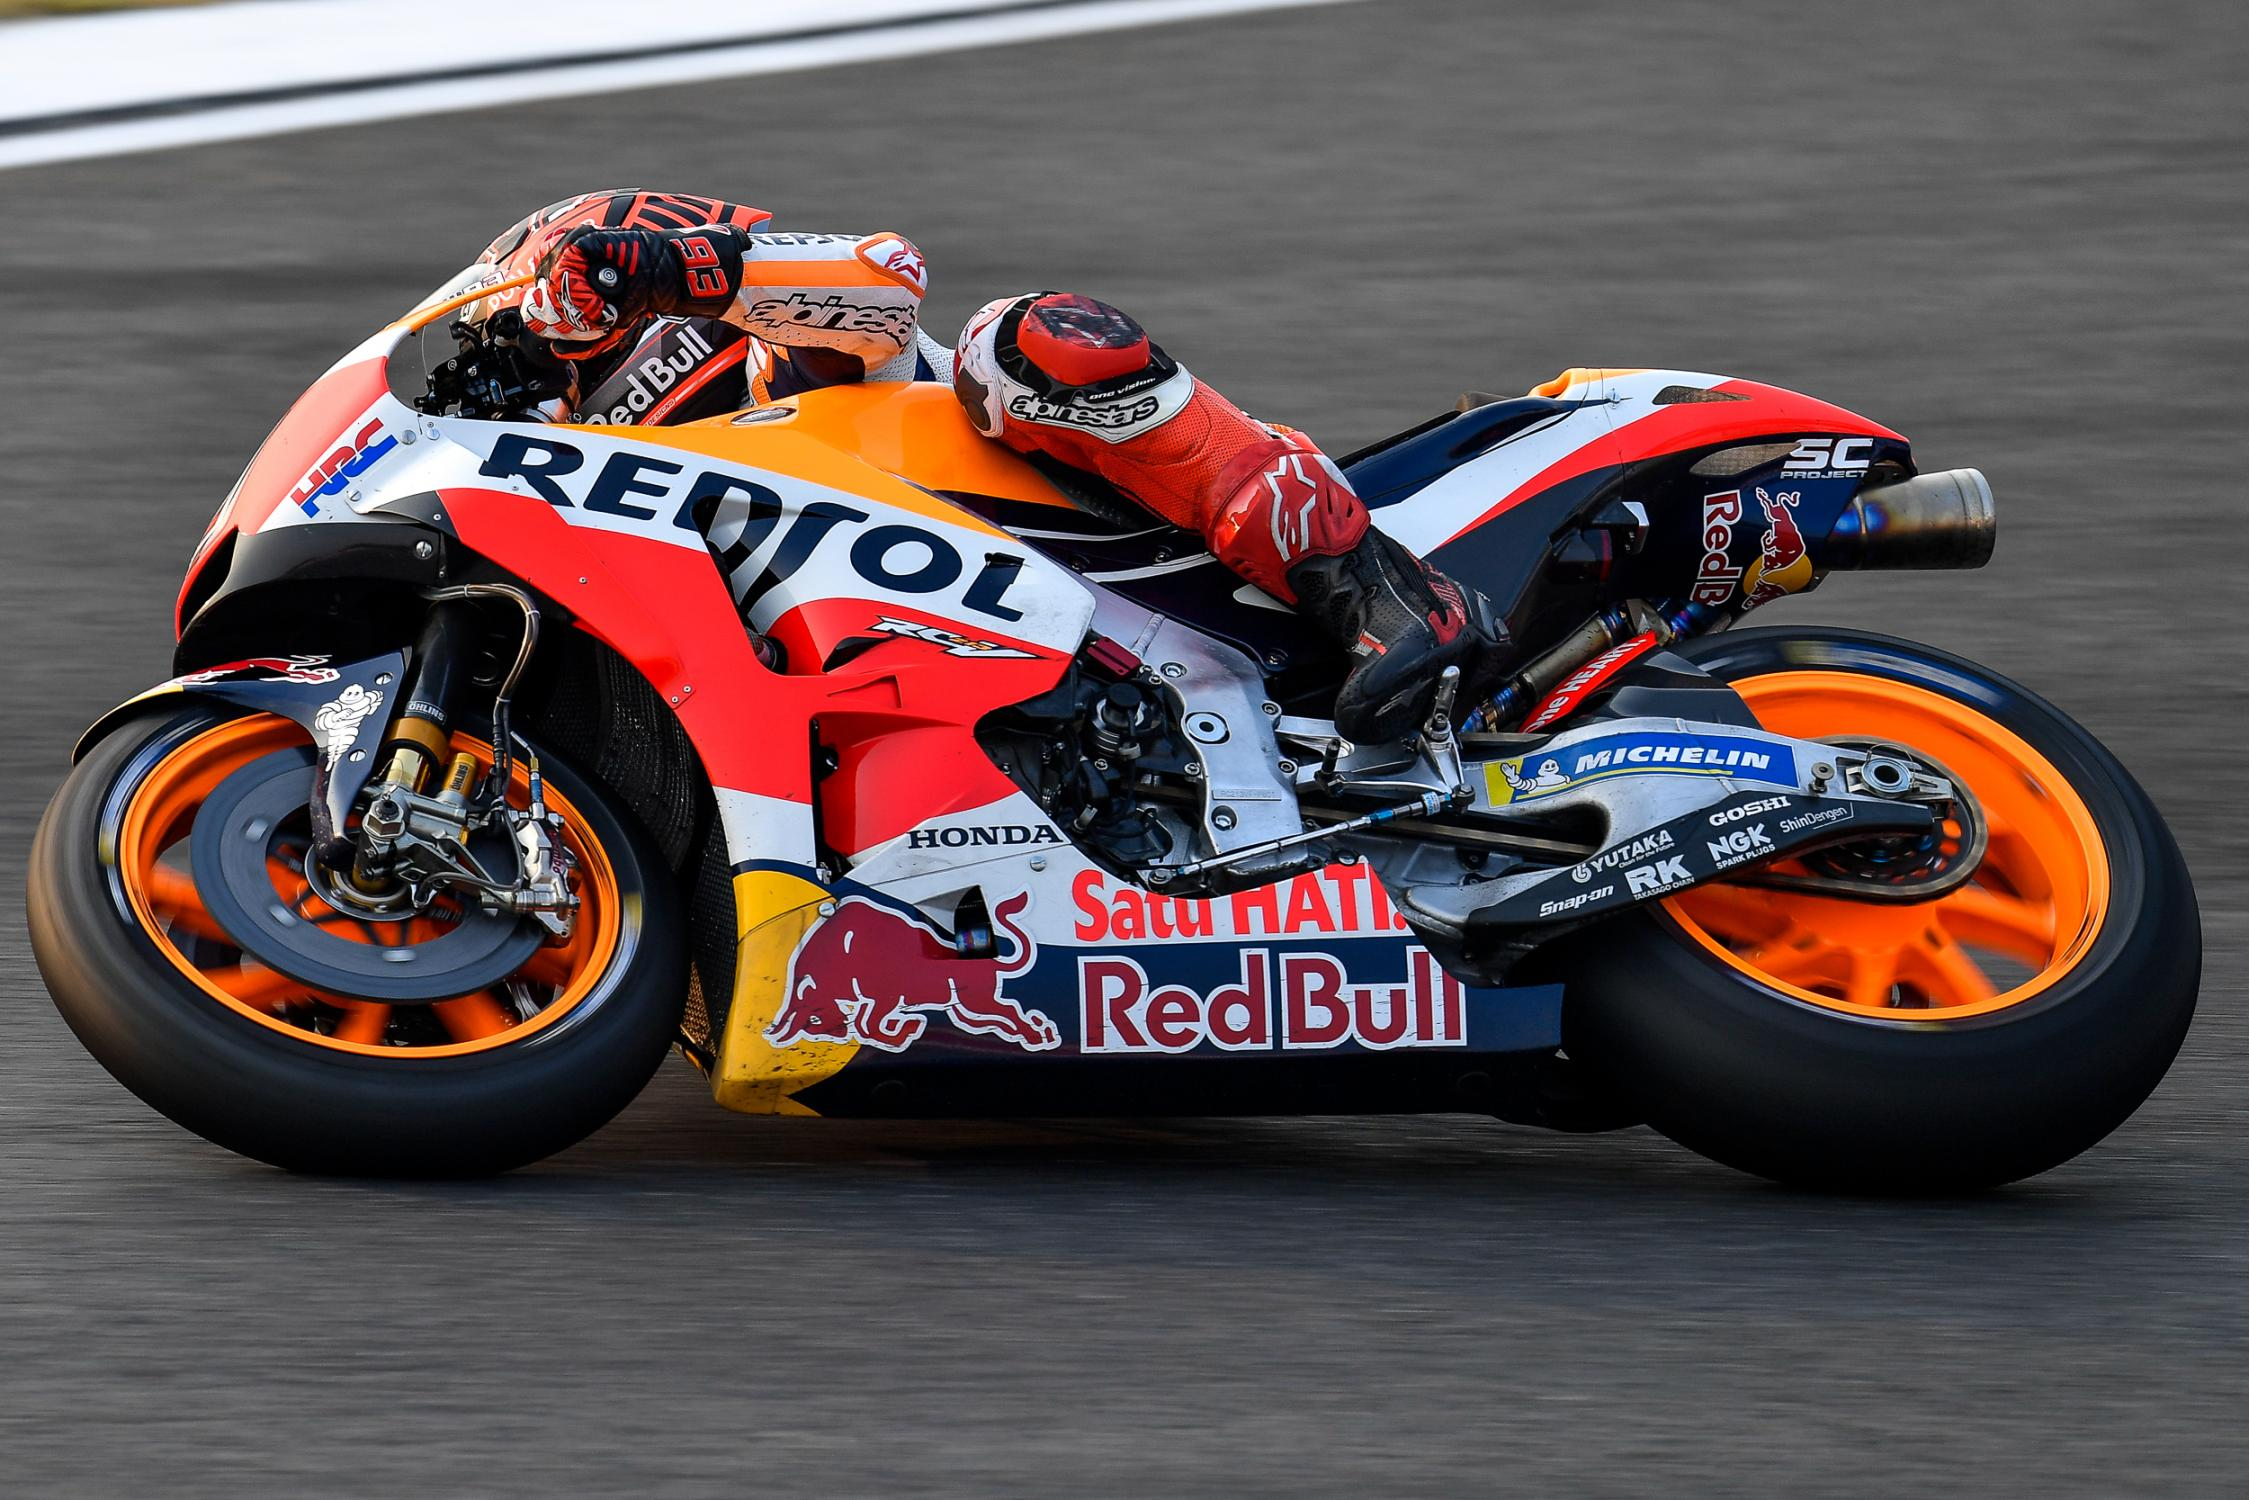 93-marc-marquez-esp_ds50072.gallery_full_top_fullscreen.jpg